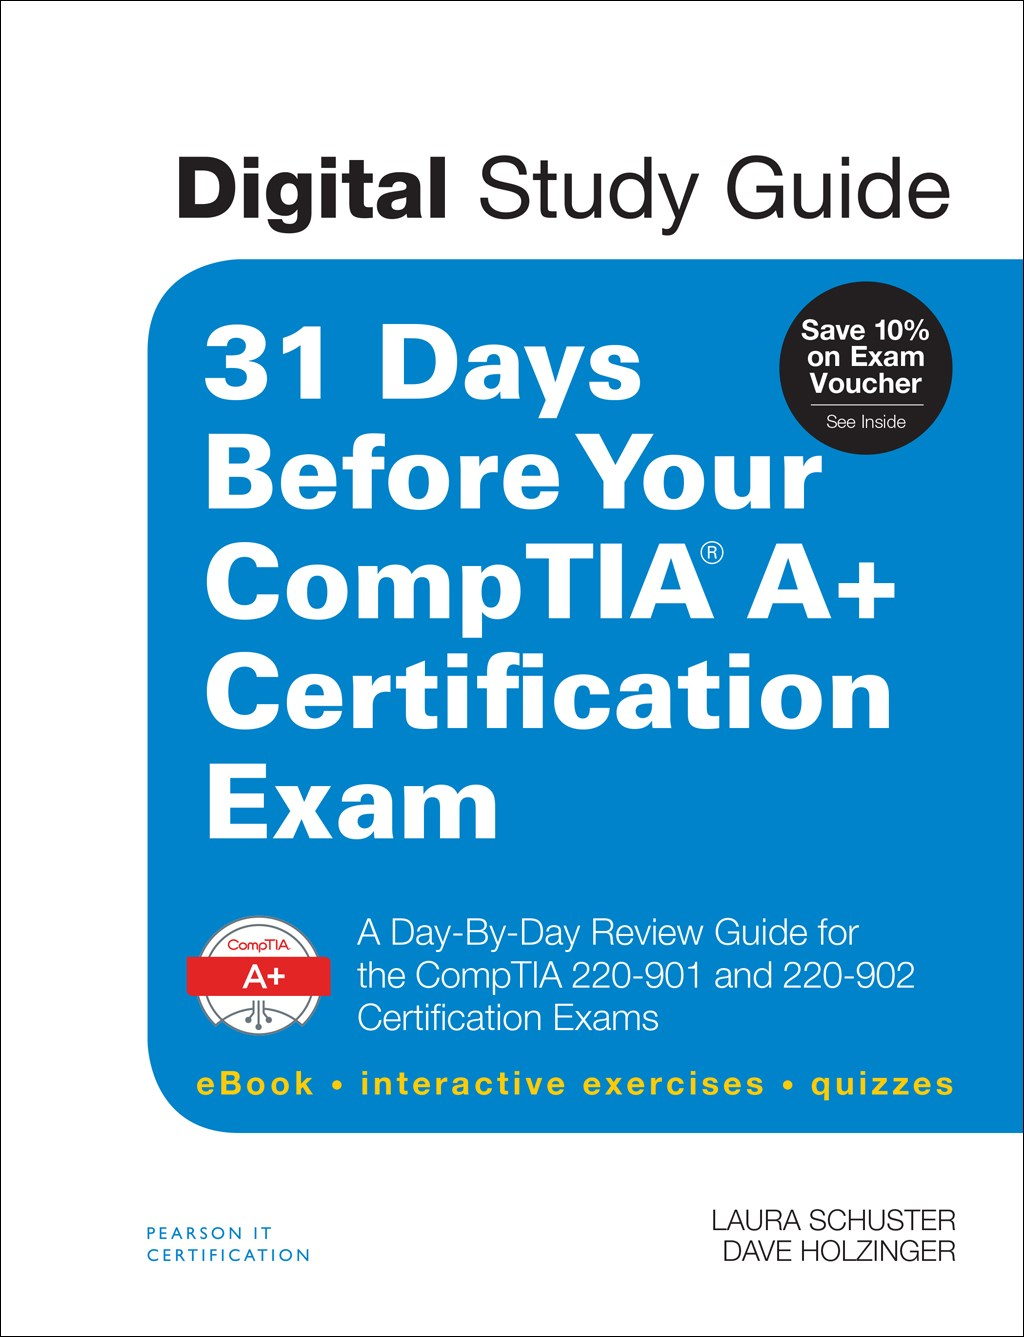 31 Days Before Your CompTIA A+ Certification Exam (Digital Study Guide): A Day-By-Day Review Guide for the CompTIA 220-901 and 220-902 Certification exams (eBook, videos, interactive exercises, quizzes)